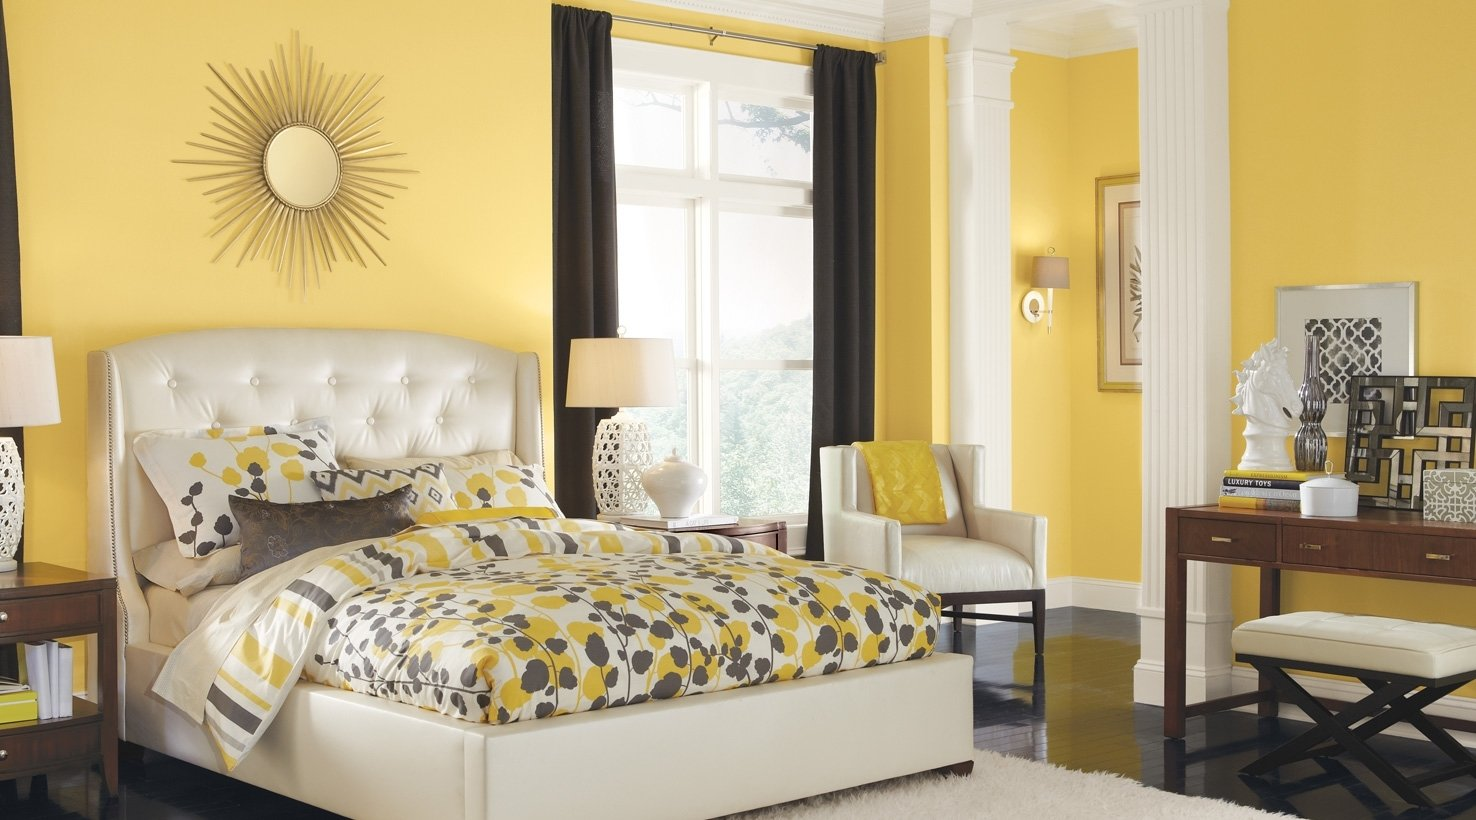 10 Cute Wall Paint Ideas For Bedroom bedroom paint color ideas inspiration gallery sherwin williams 2 2021